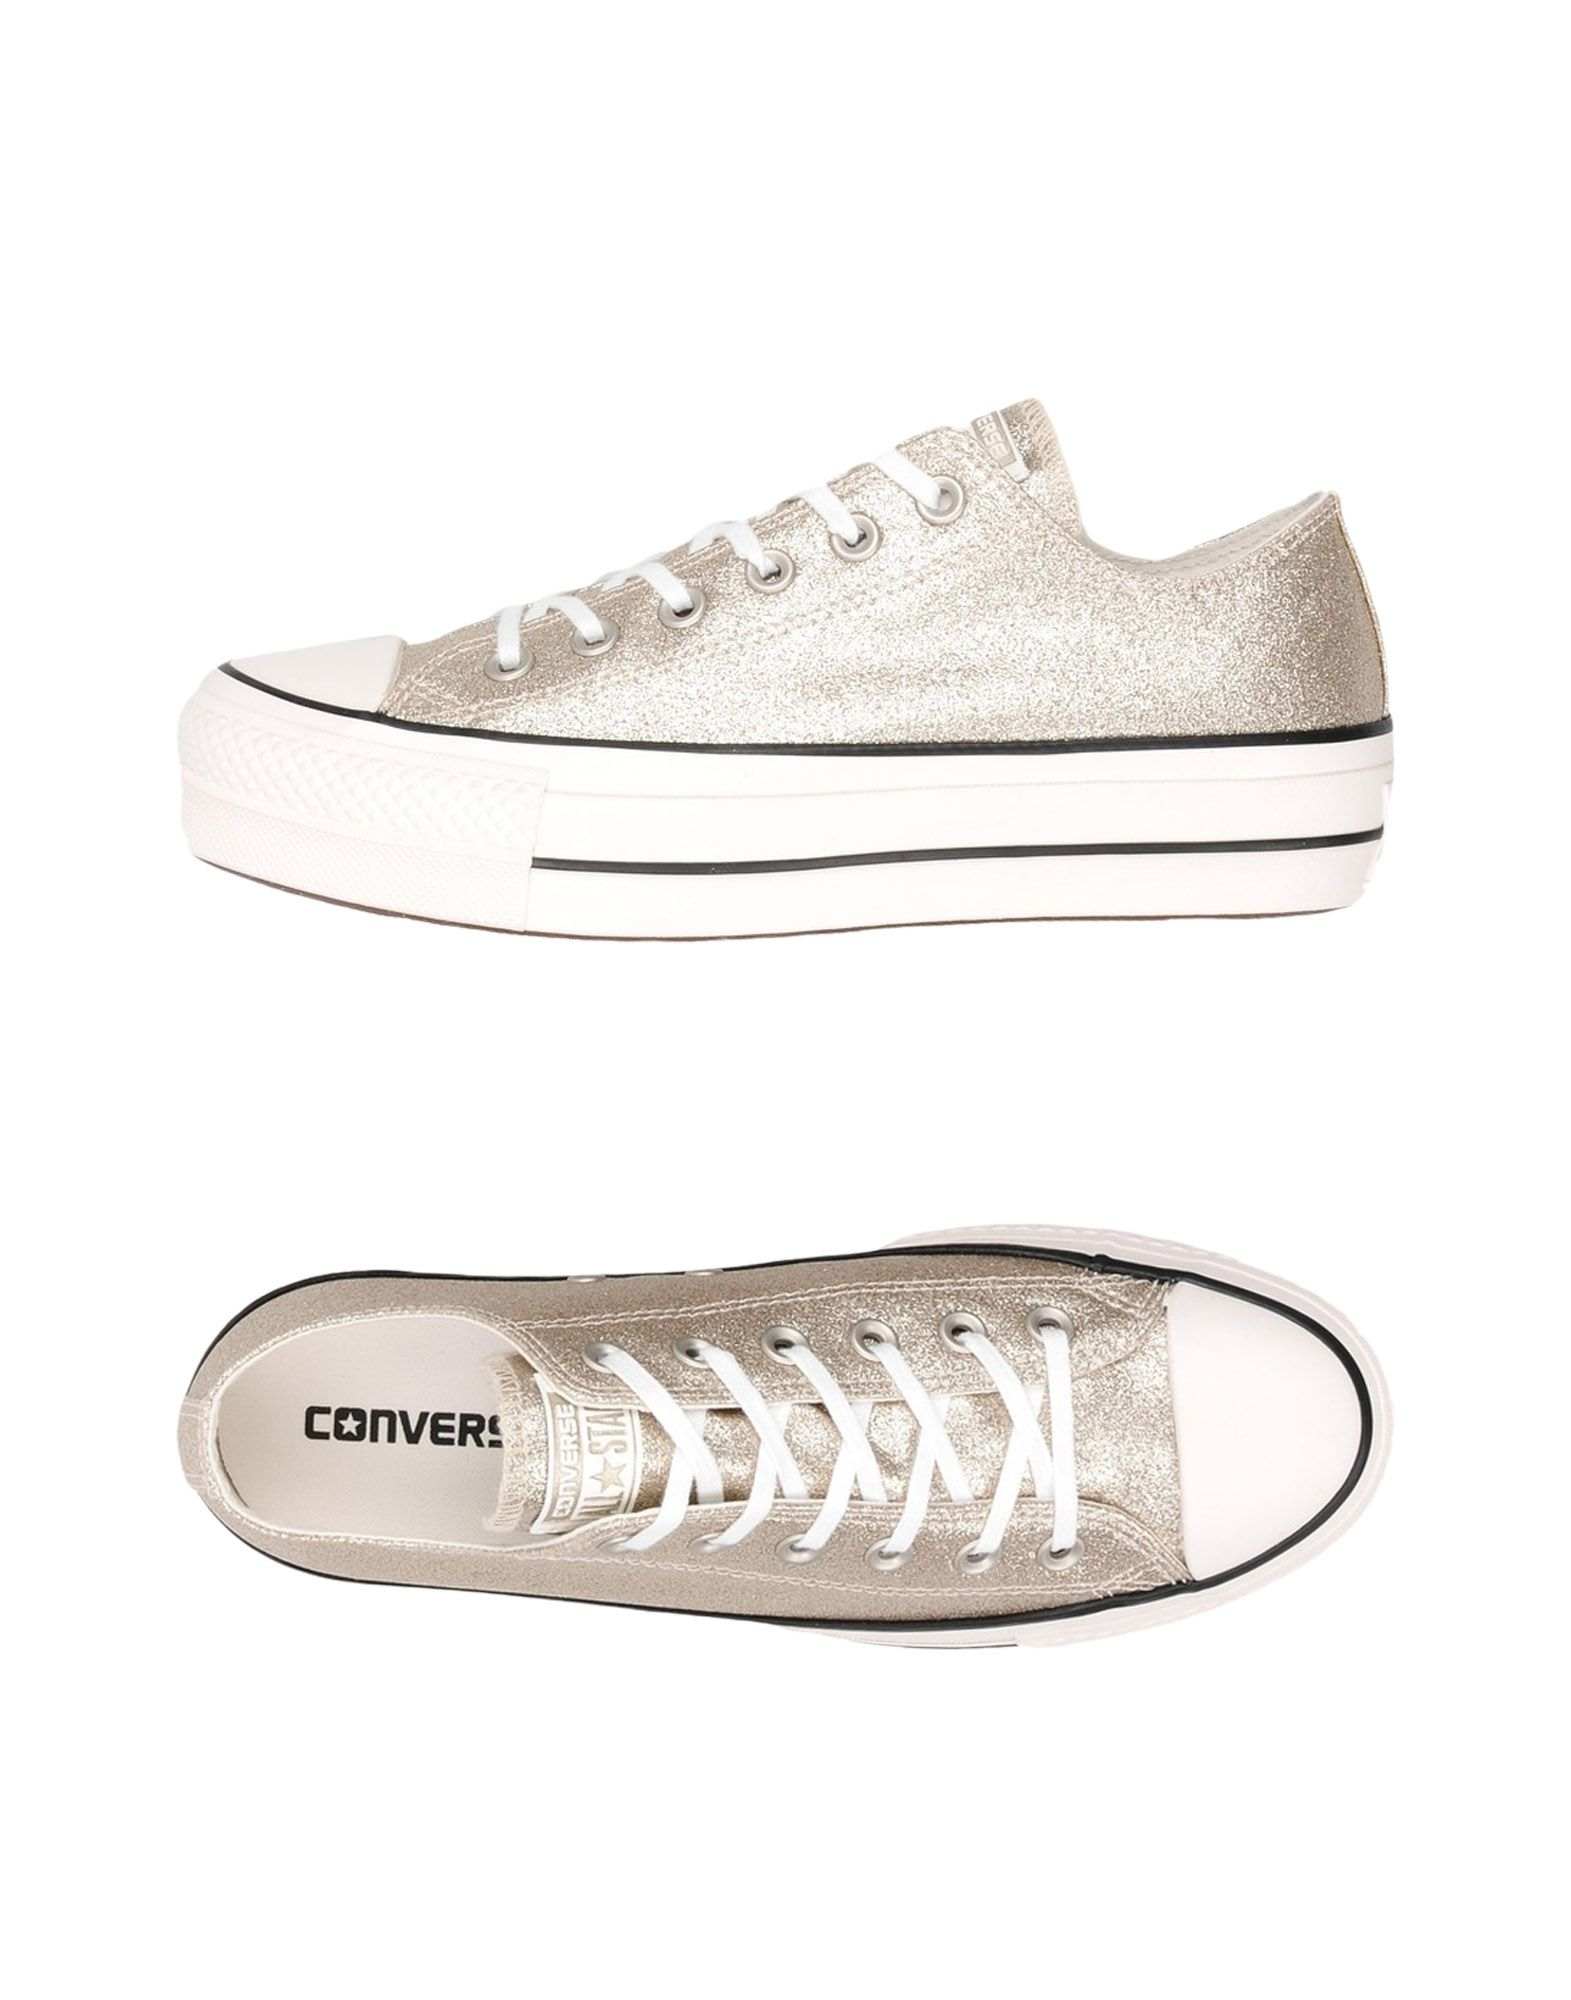 Sneakers Converse All Star Ctas Ox Lift Clean - Donna - 11445730DT